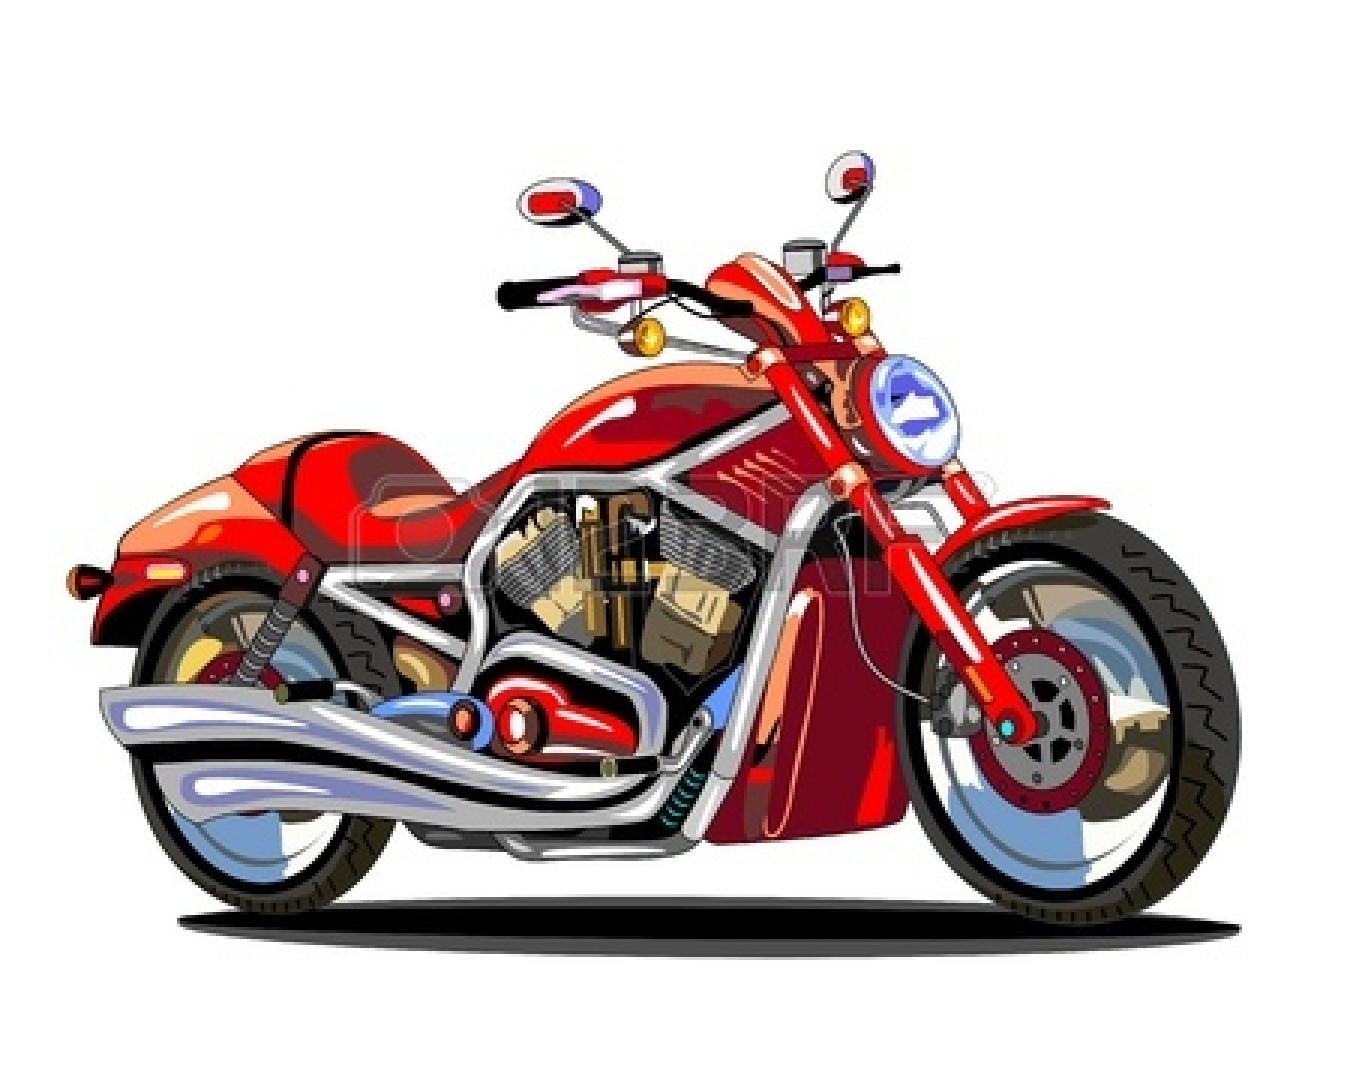 Animated motorcycle clipart